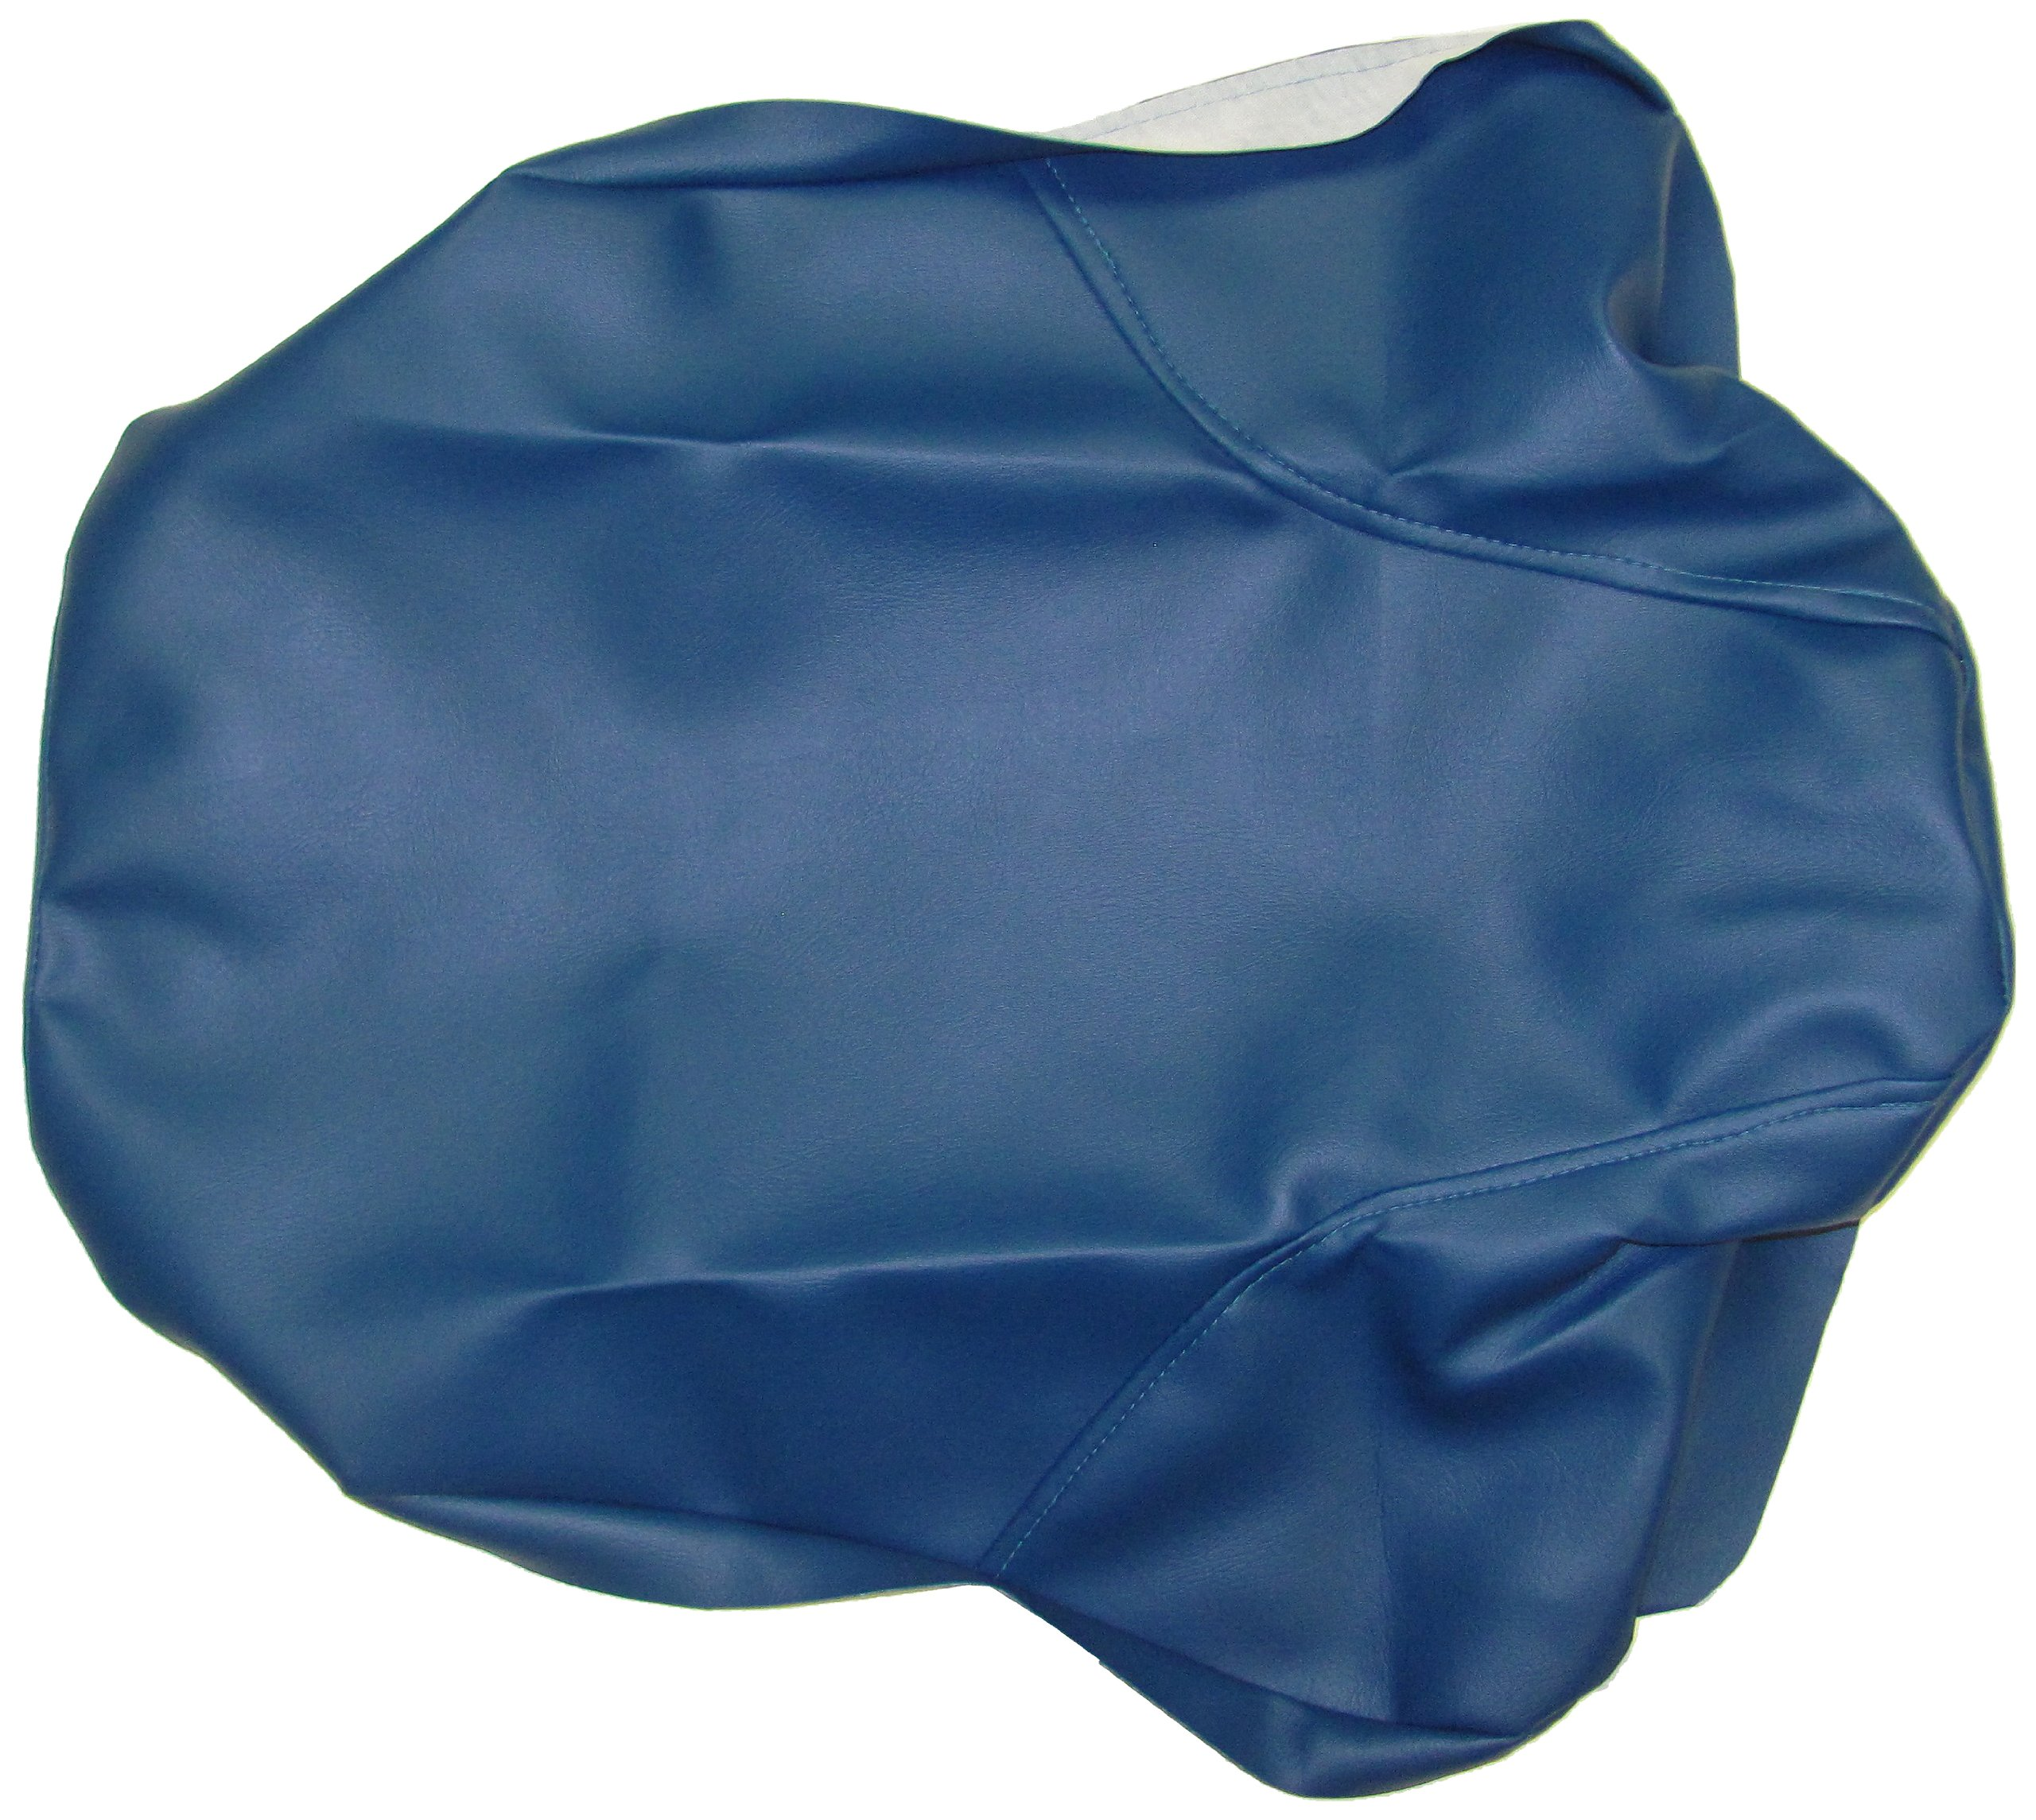 Freedom County ATV FC337 Blue Replacement Seat Cover for Honda TRX250X 87-92